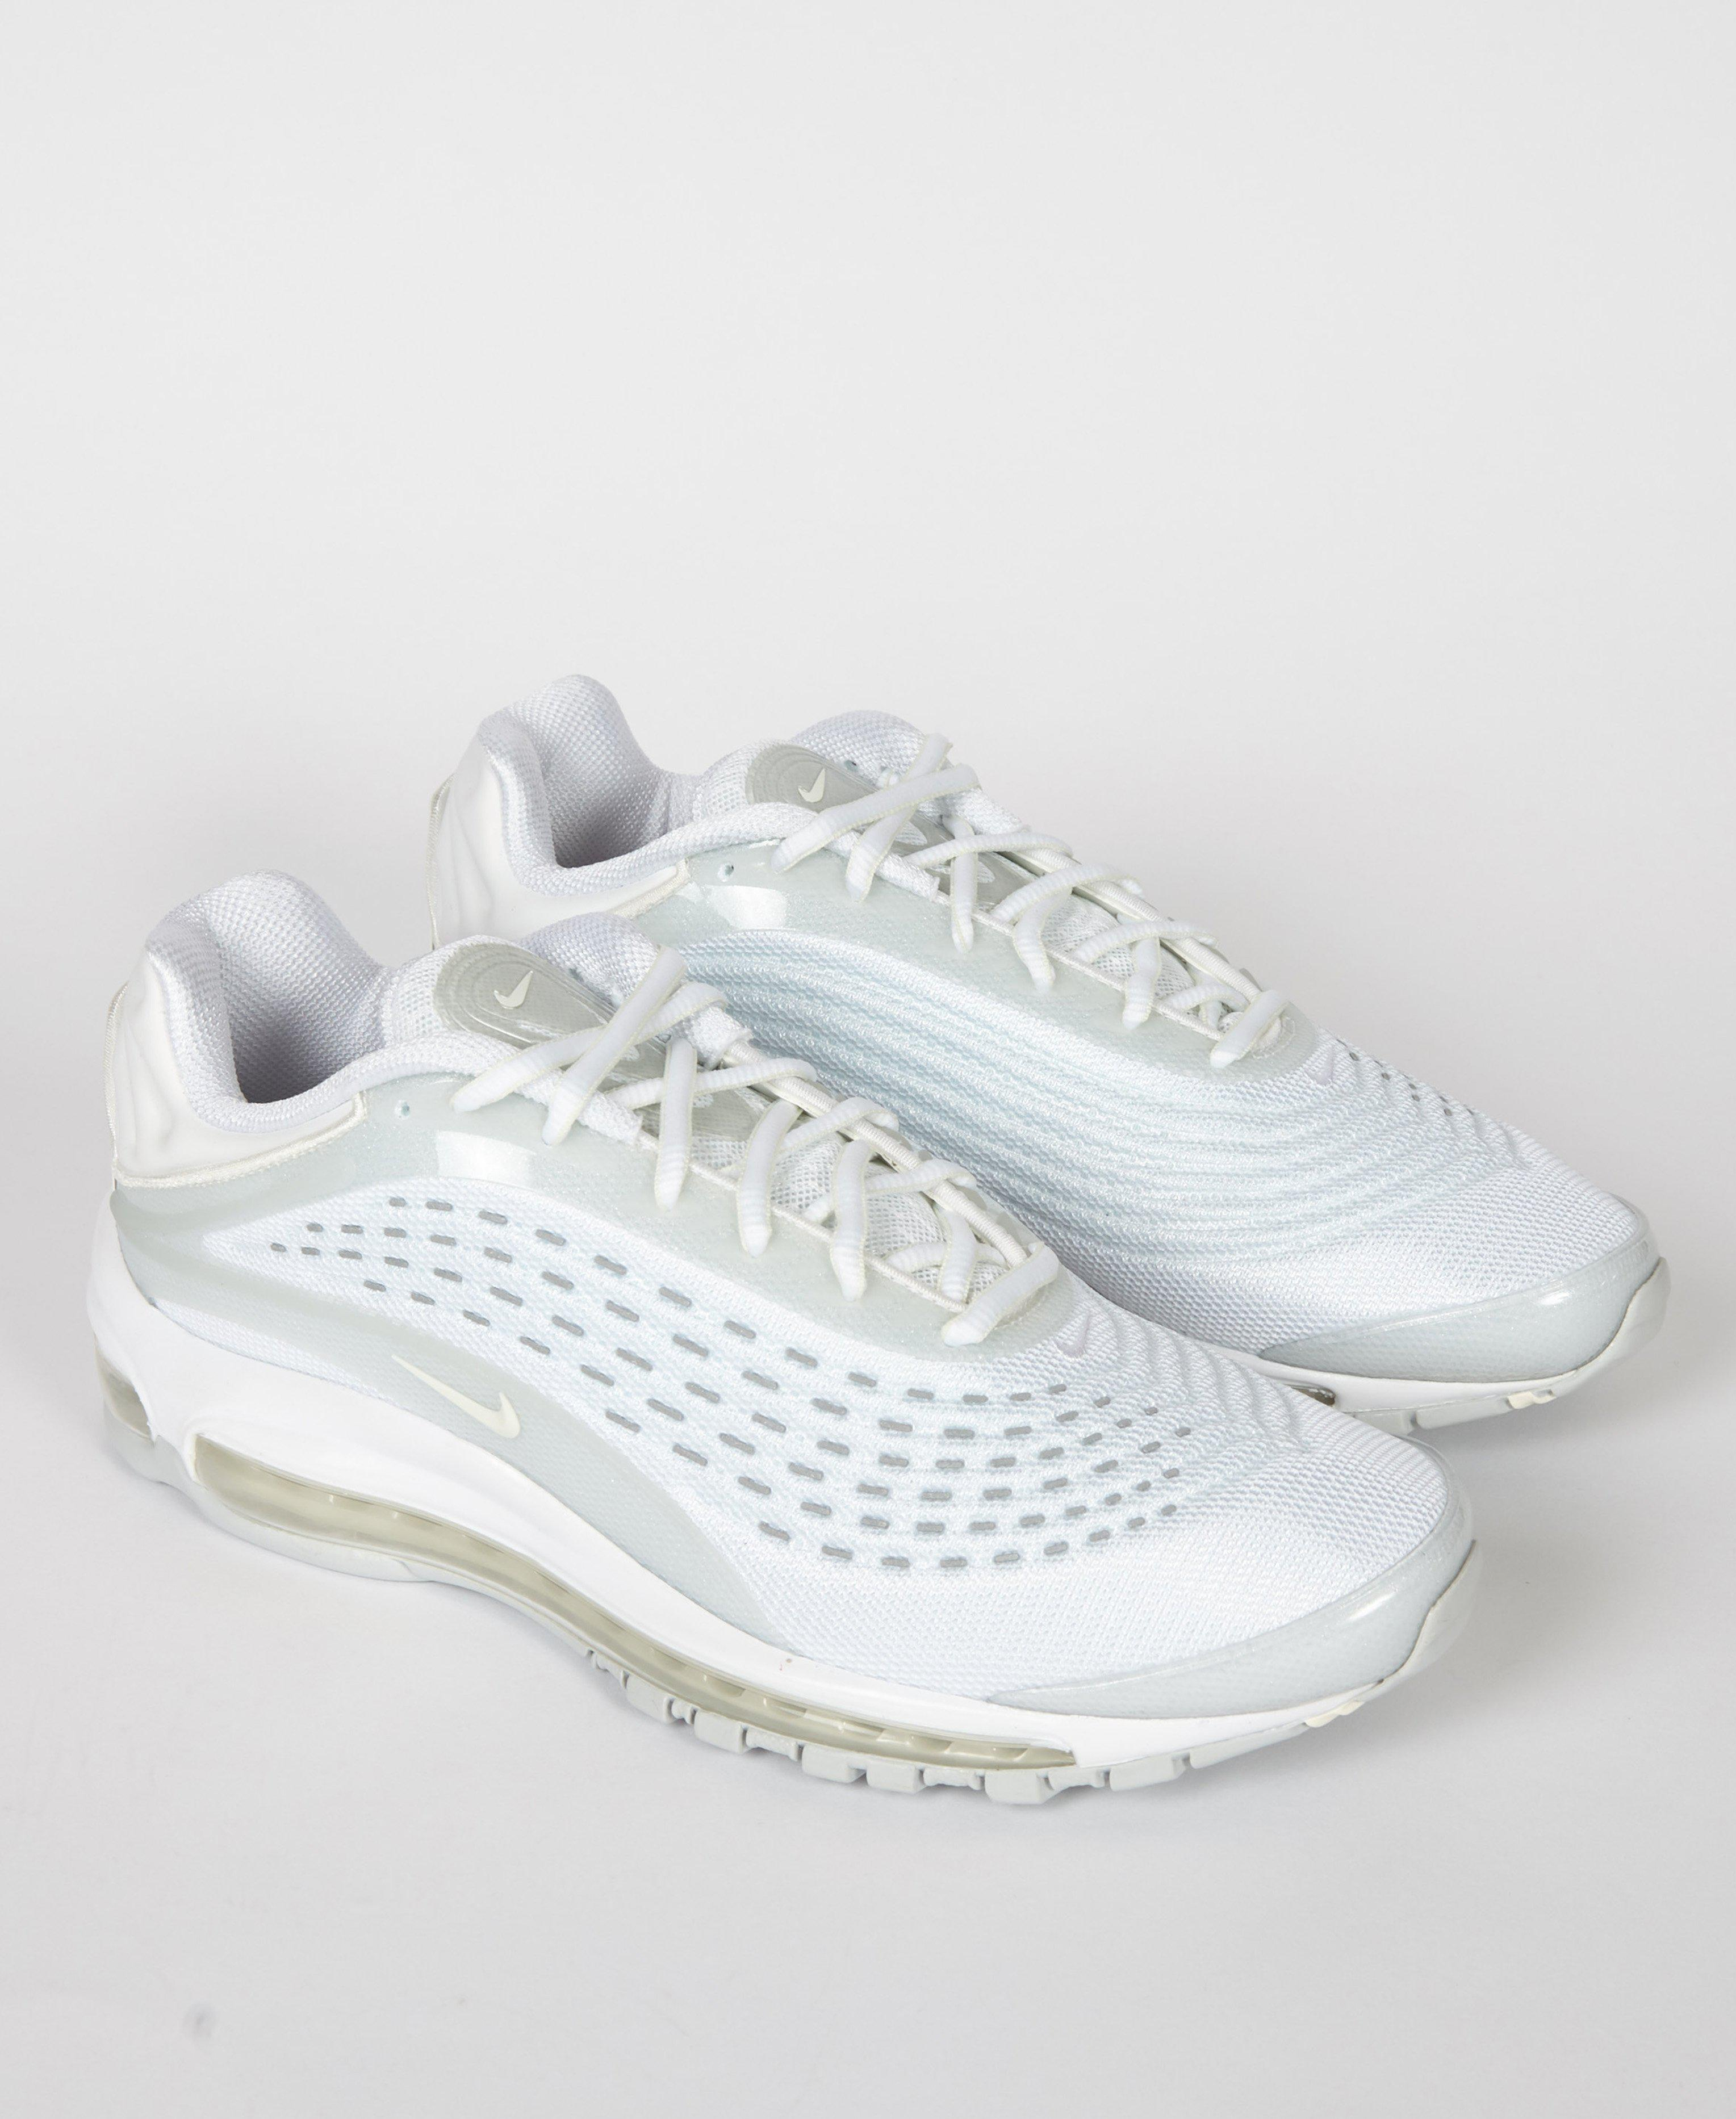 96fc344ad35cb Nike Air Max Deluxe  triple White  in White for Men - Save 40% - Lyst